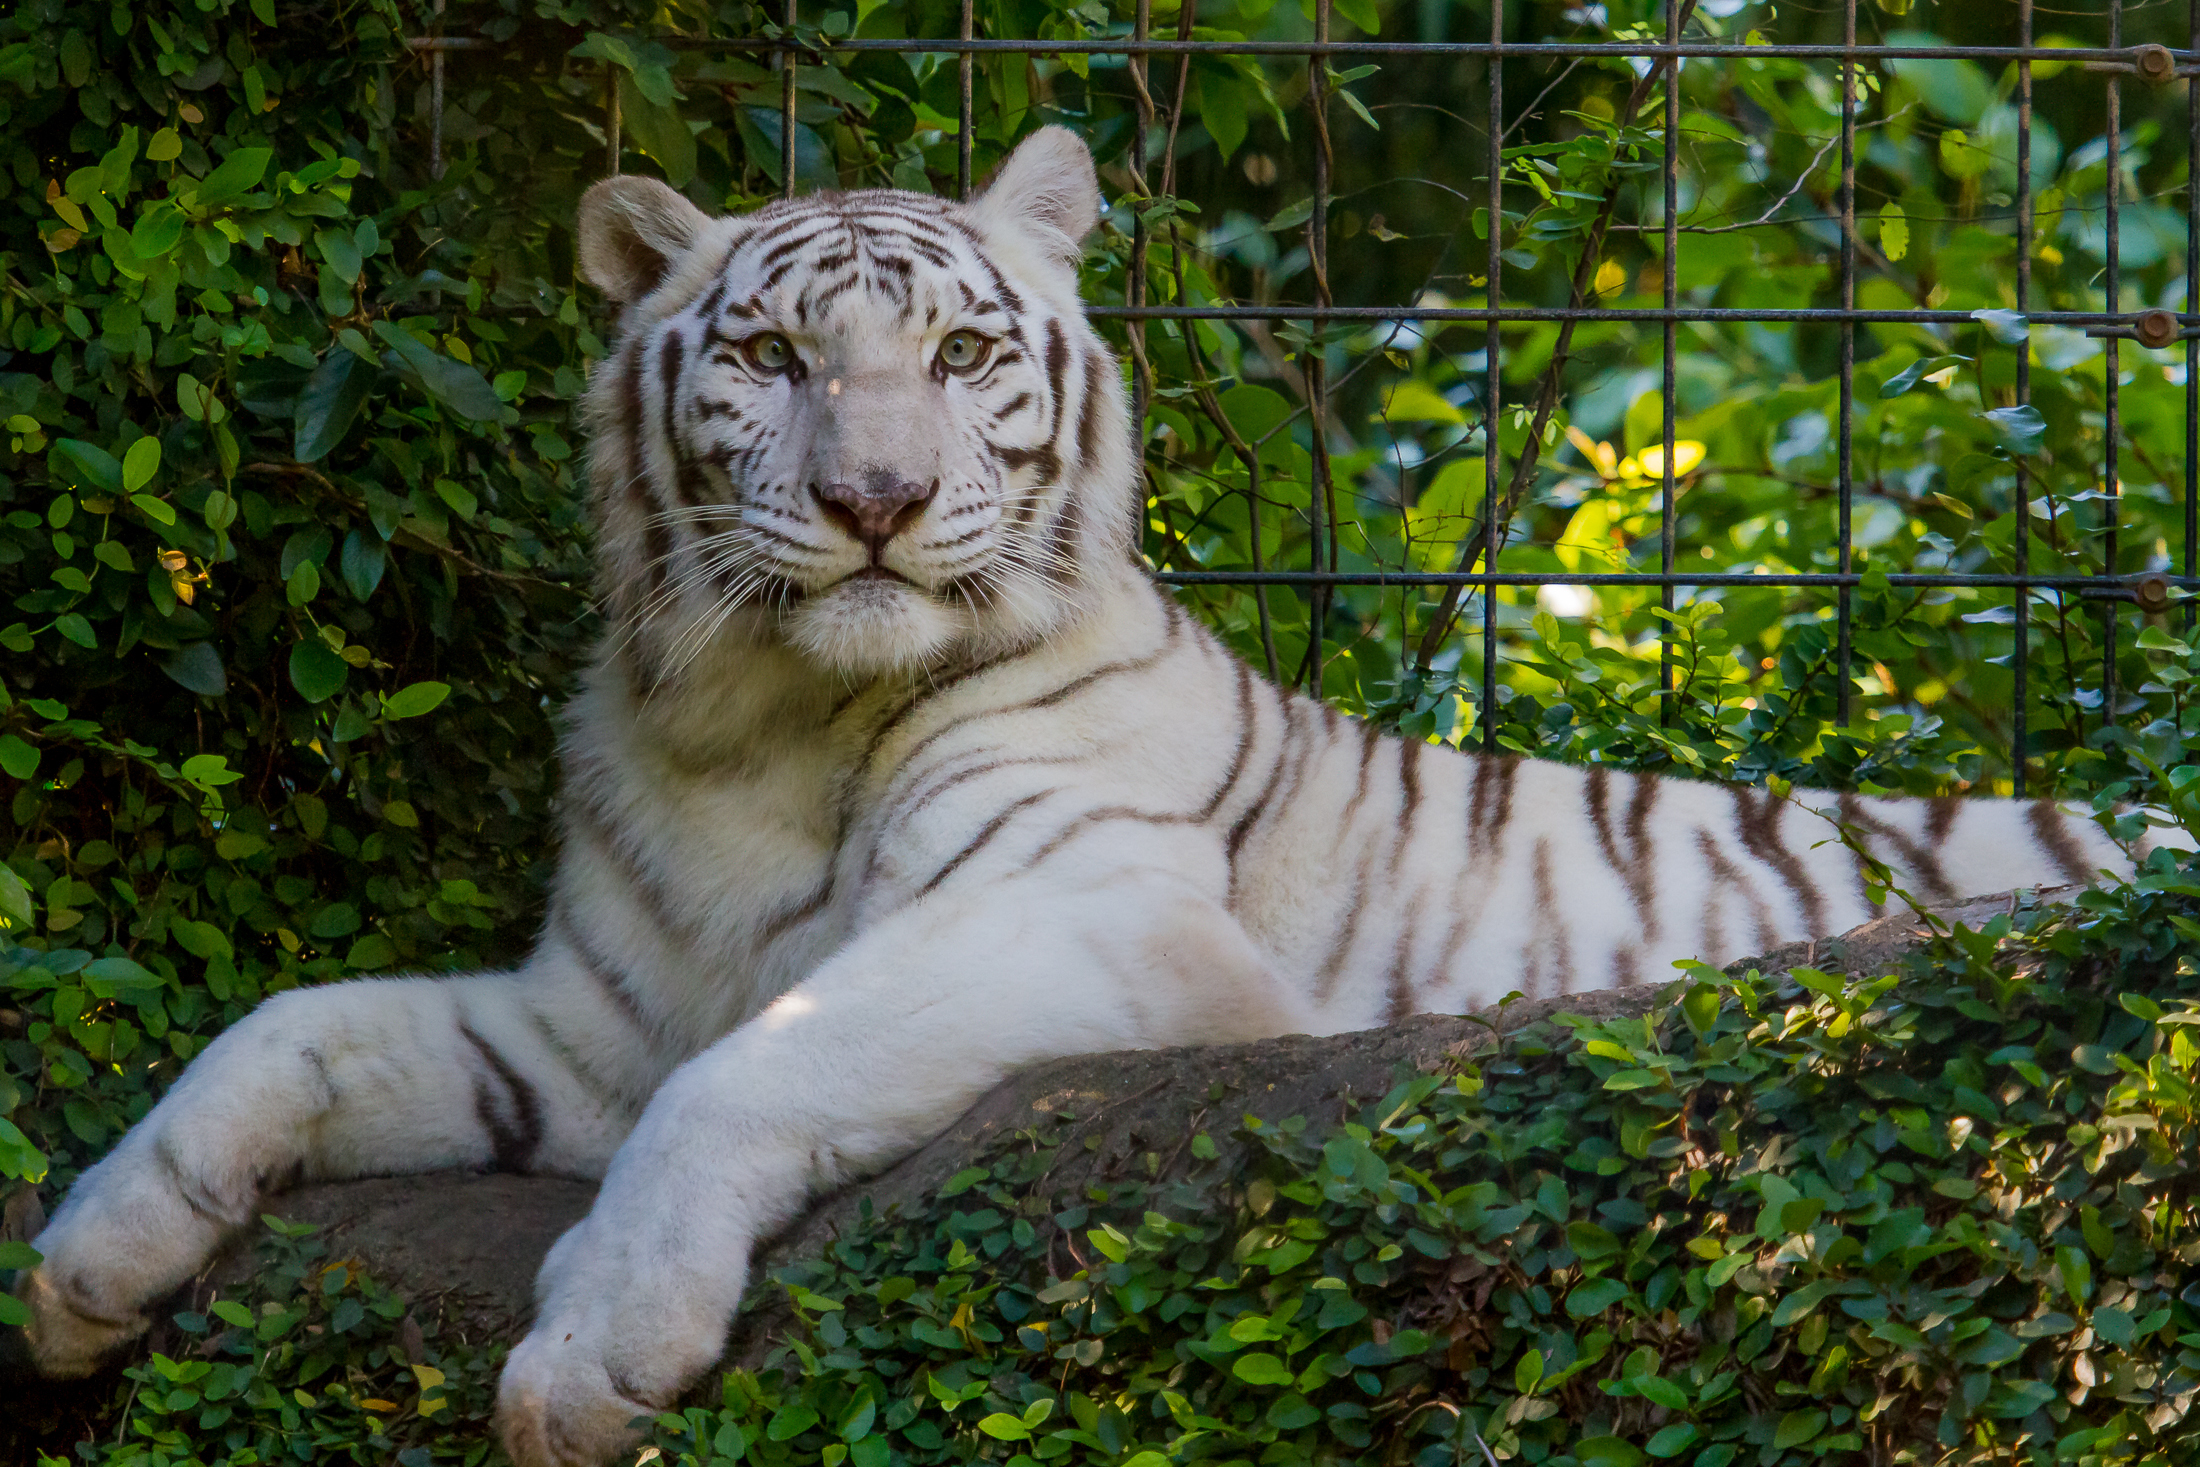 Hd Wallpapers Brands Logos White Tiger Wallpapers Pictures Images